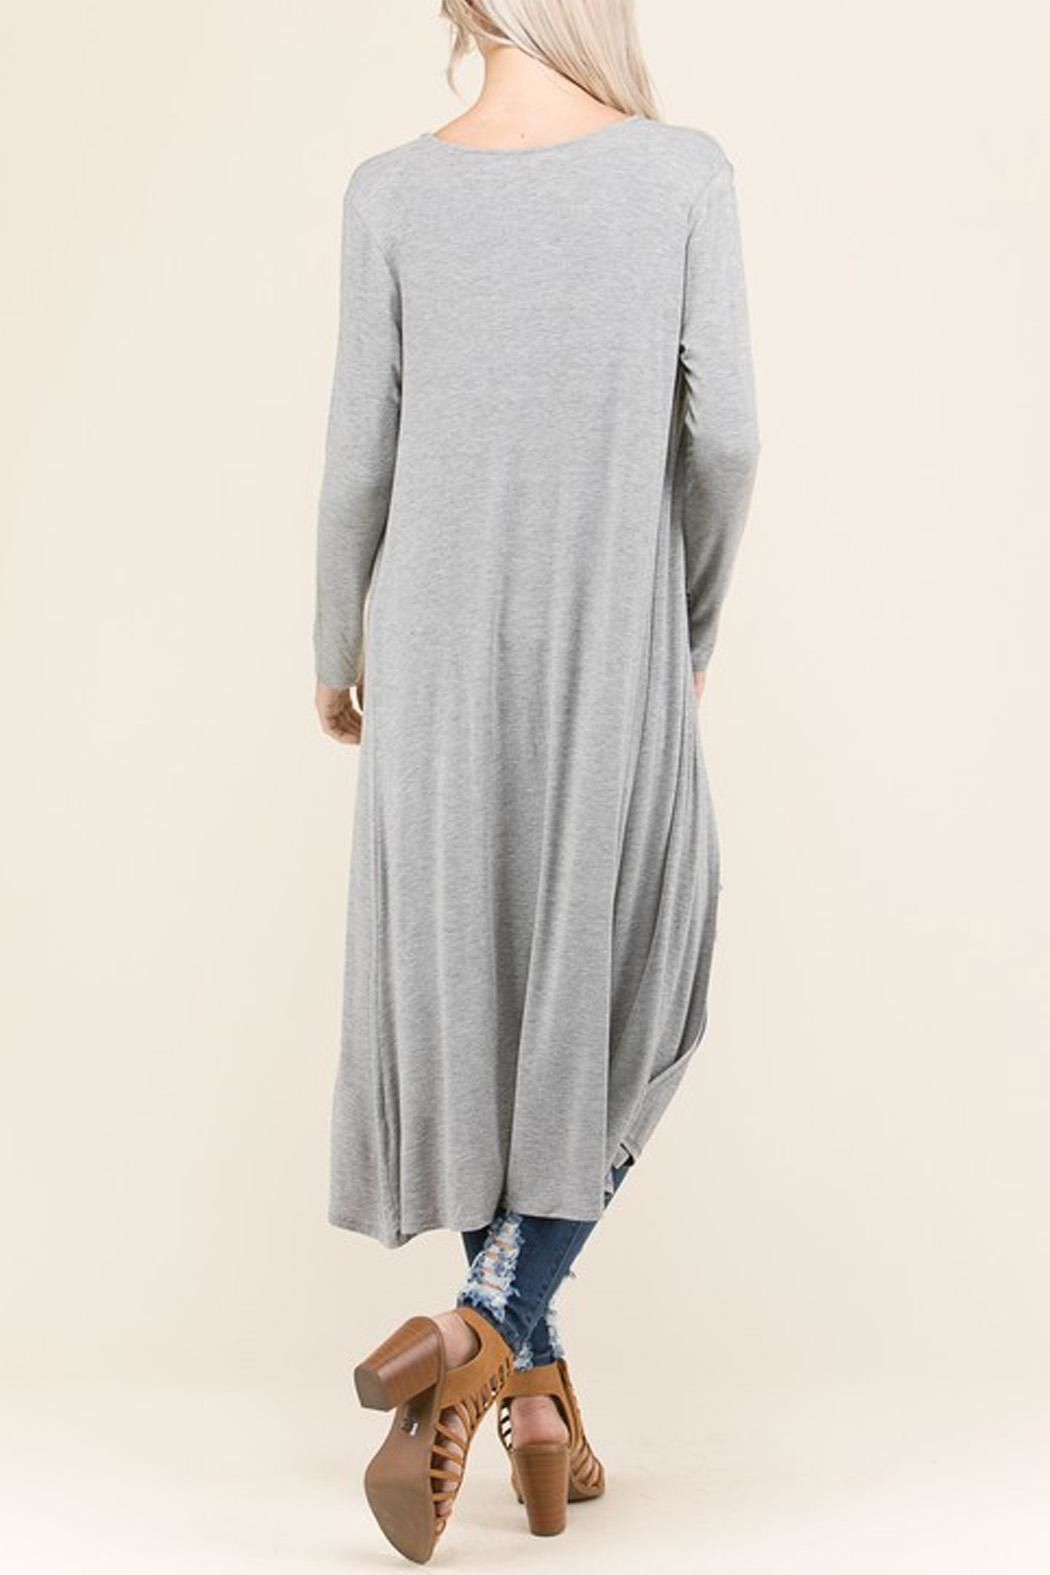 Wild Lilies Jewelry  Gray Long Cardigan - Front Full Image